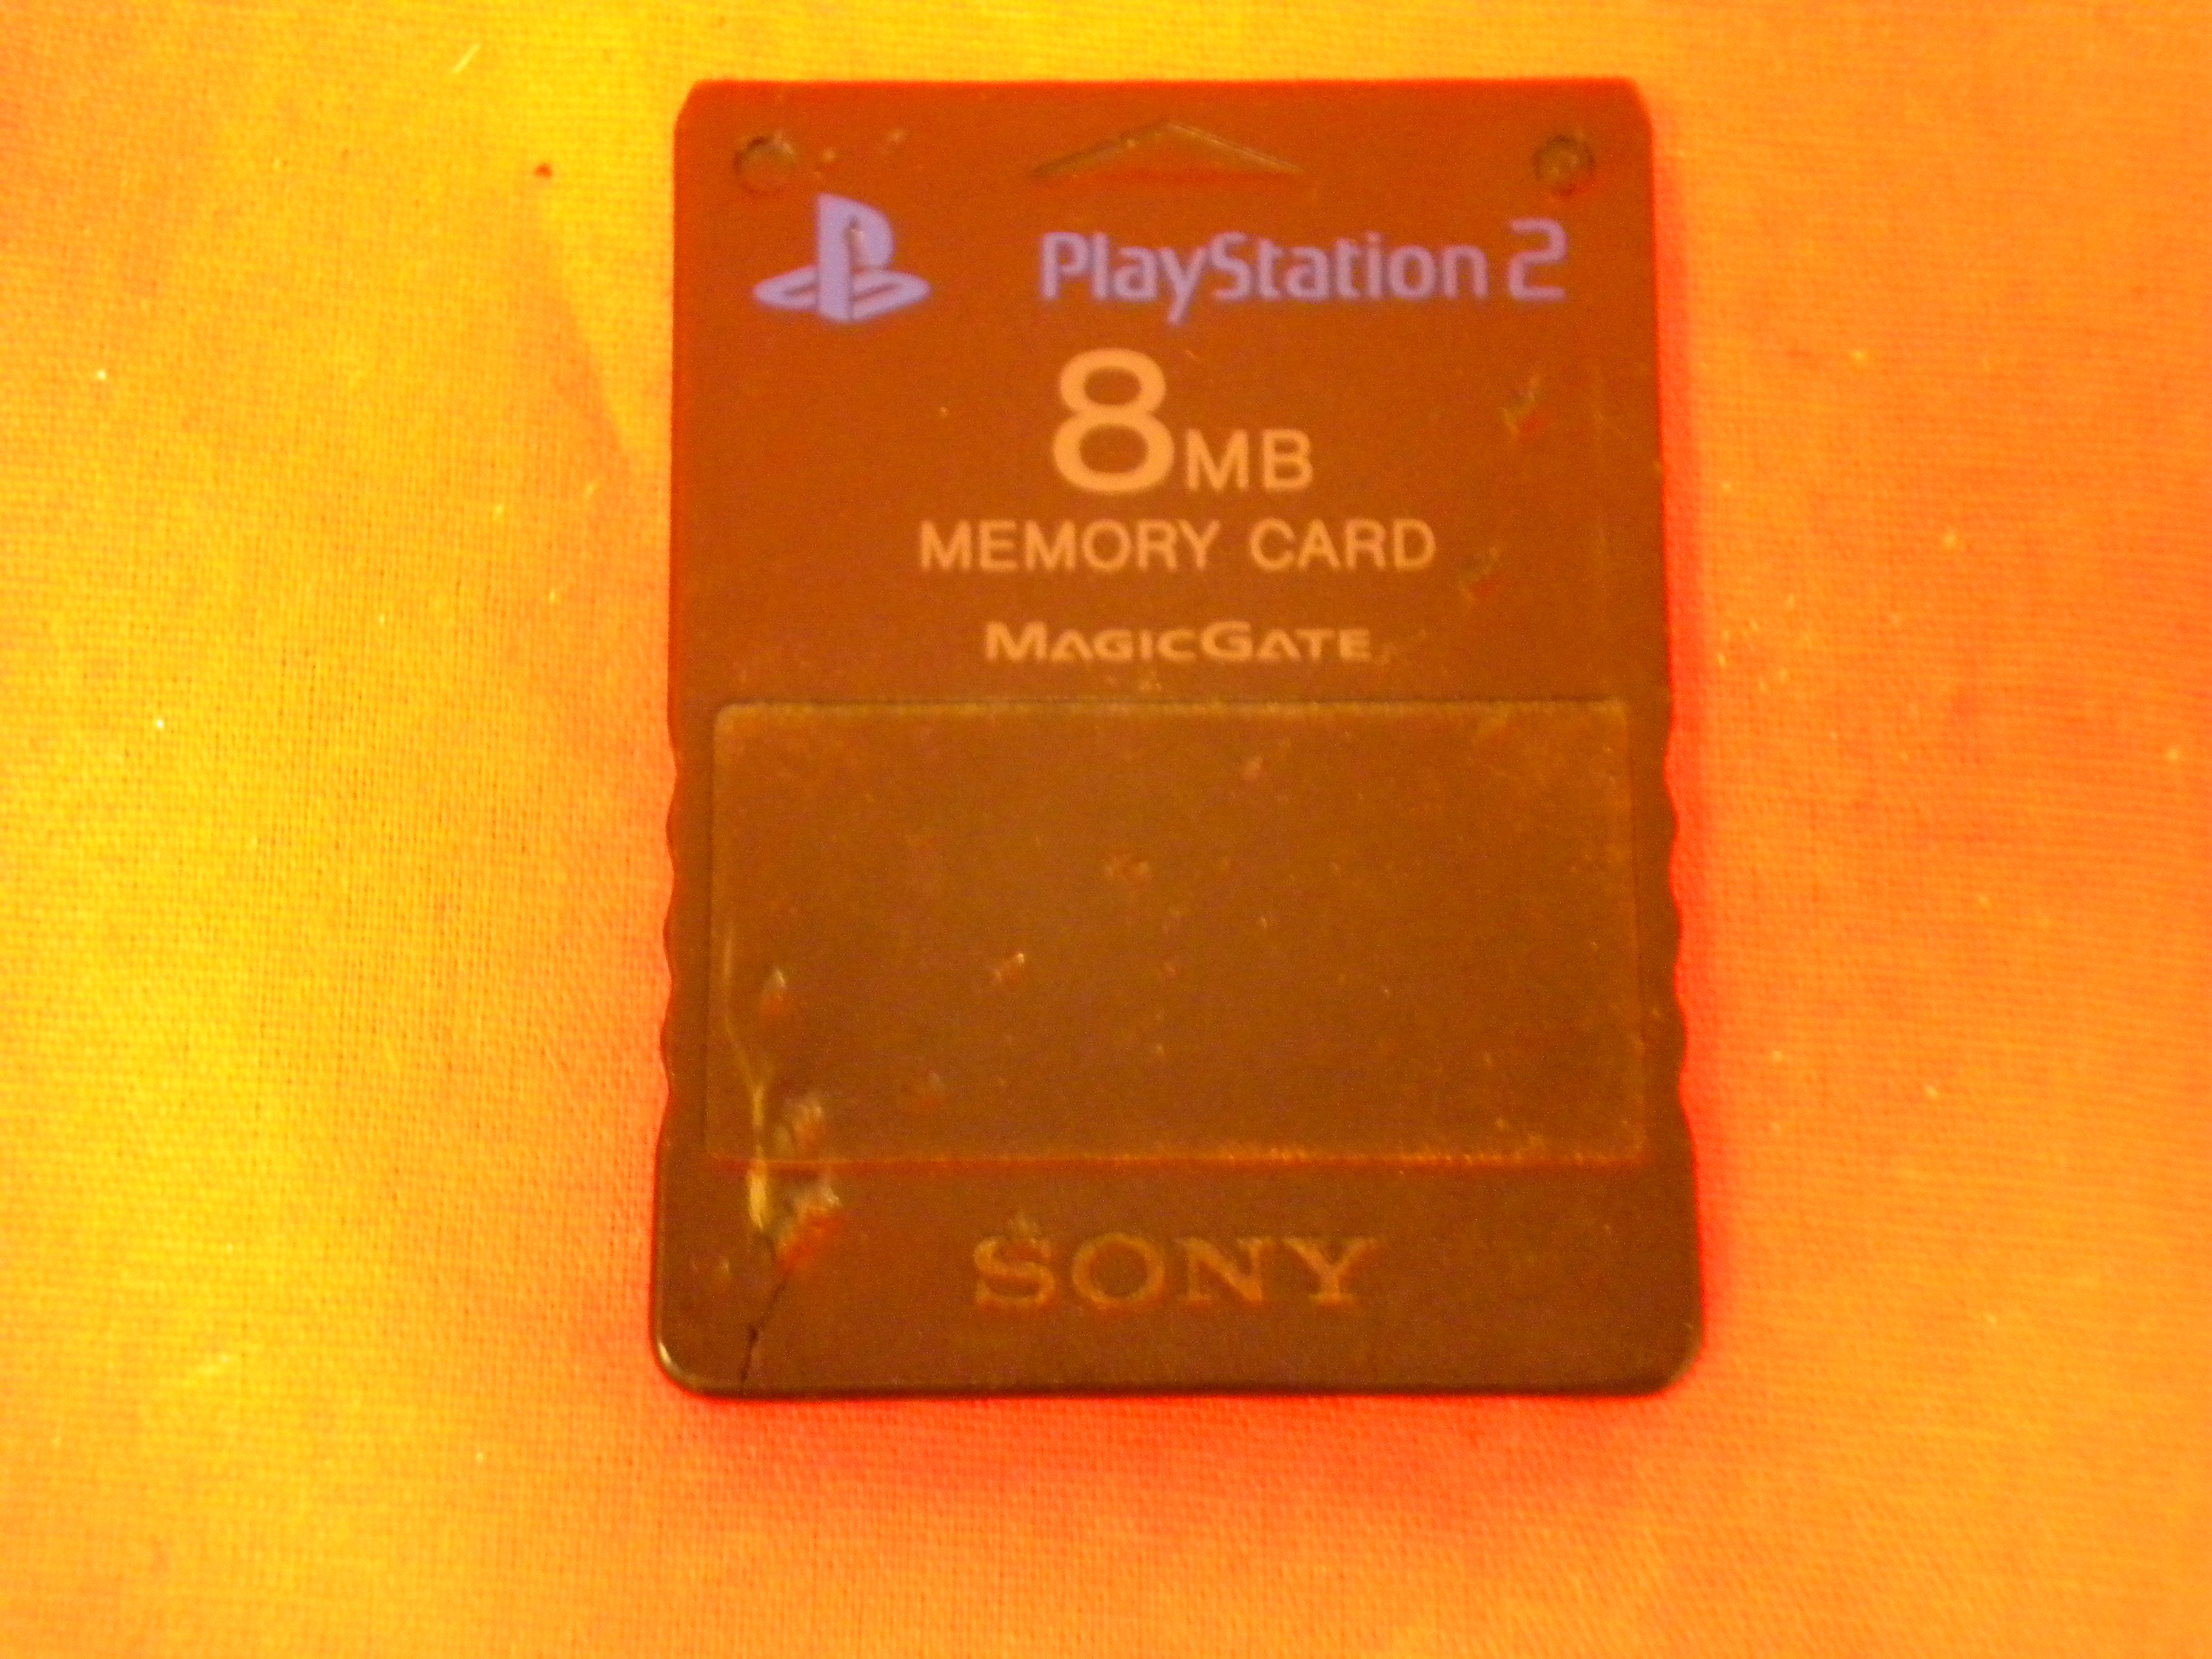 8MB Memory Card For PS2 For PlayStation 2